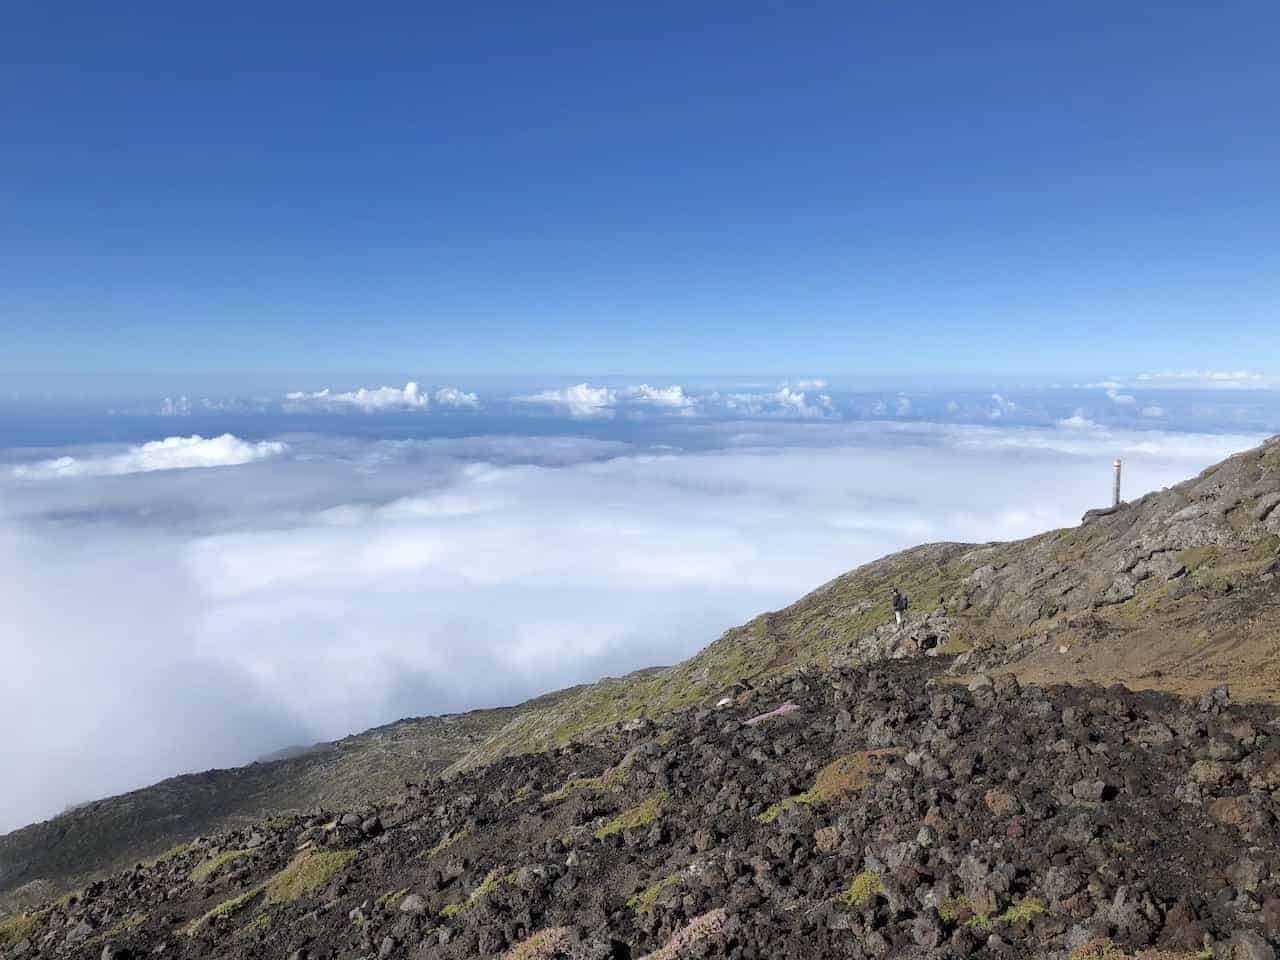 Above the Clouds Mount Pico